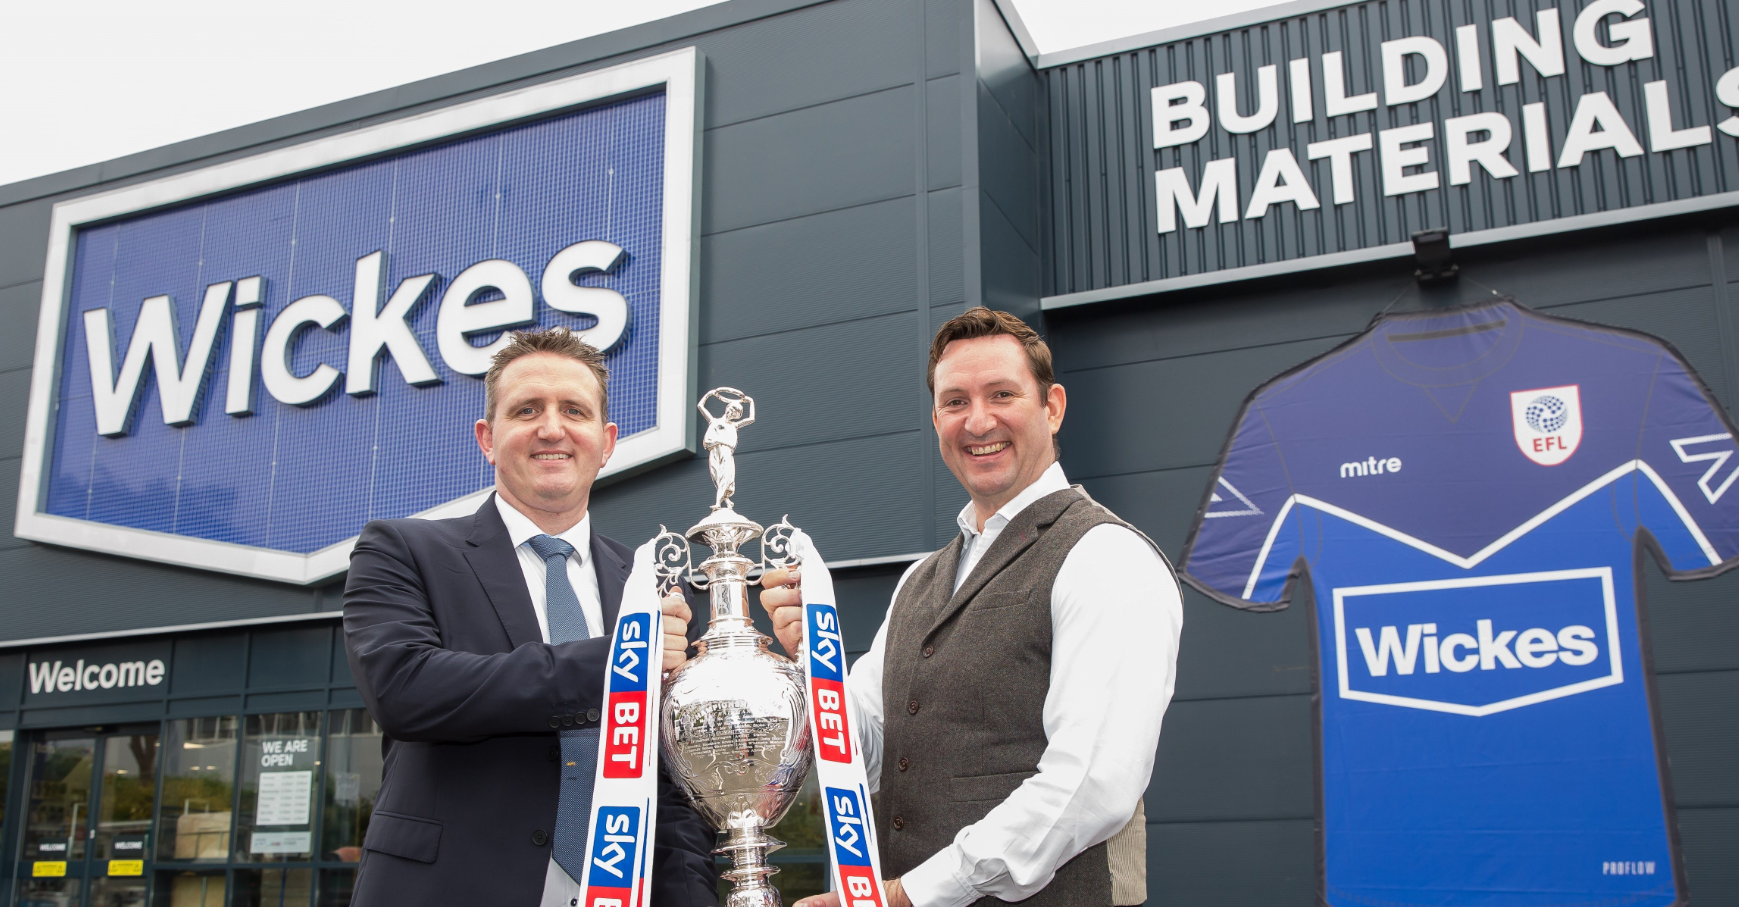 WICKES SIGN AS OFFICIAL HOME IMPROVEMENT PARTNER OF EFL!